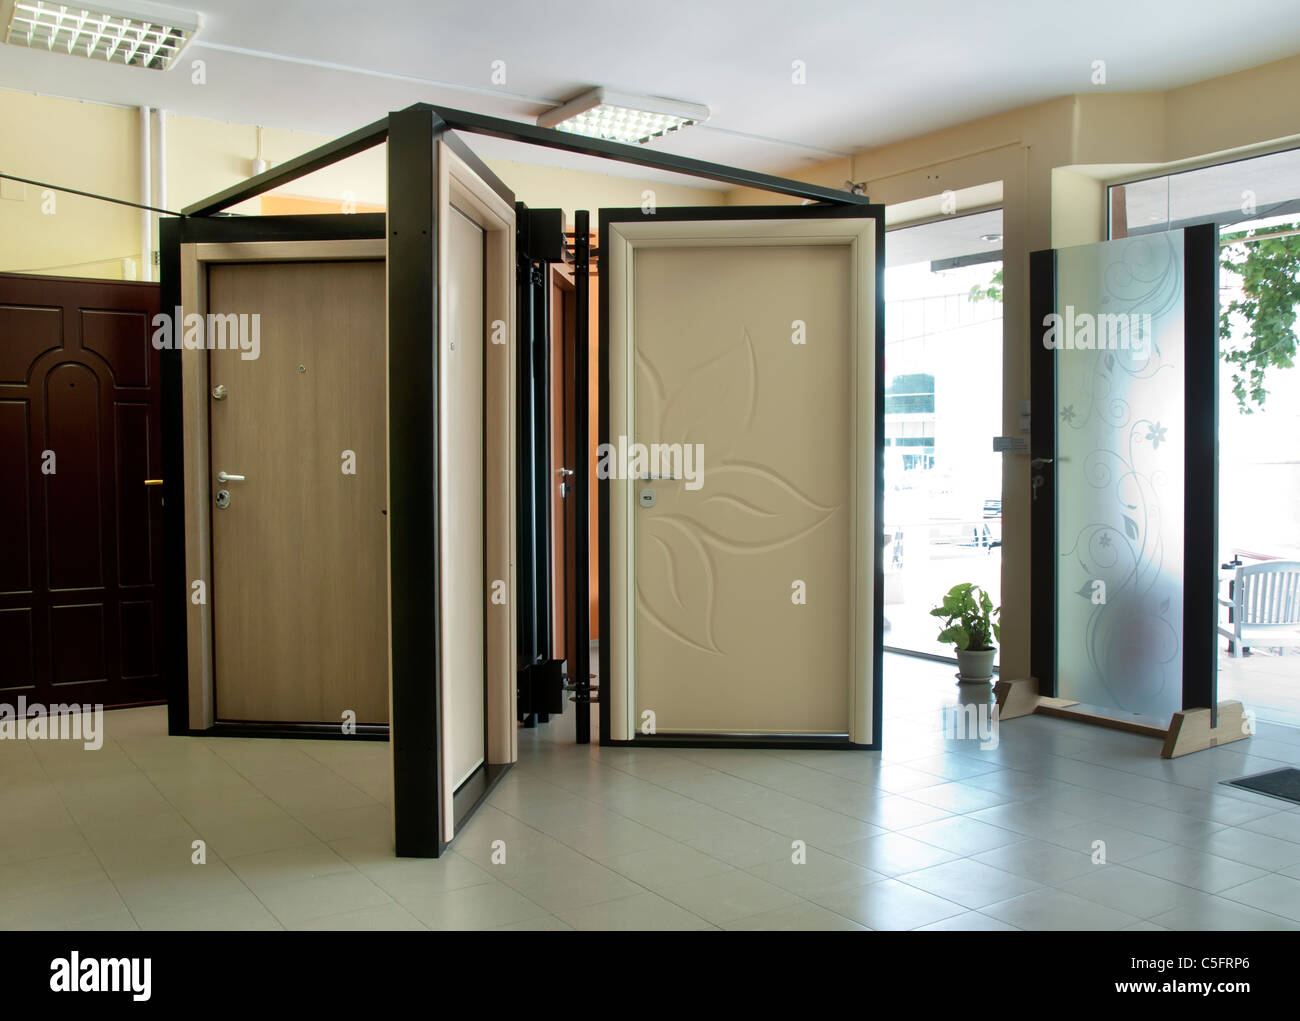 Doors shop and stillage. Sell doors - Stock Image & Architecture Structure Open House Door Doors Closed Stock Photos ...